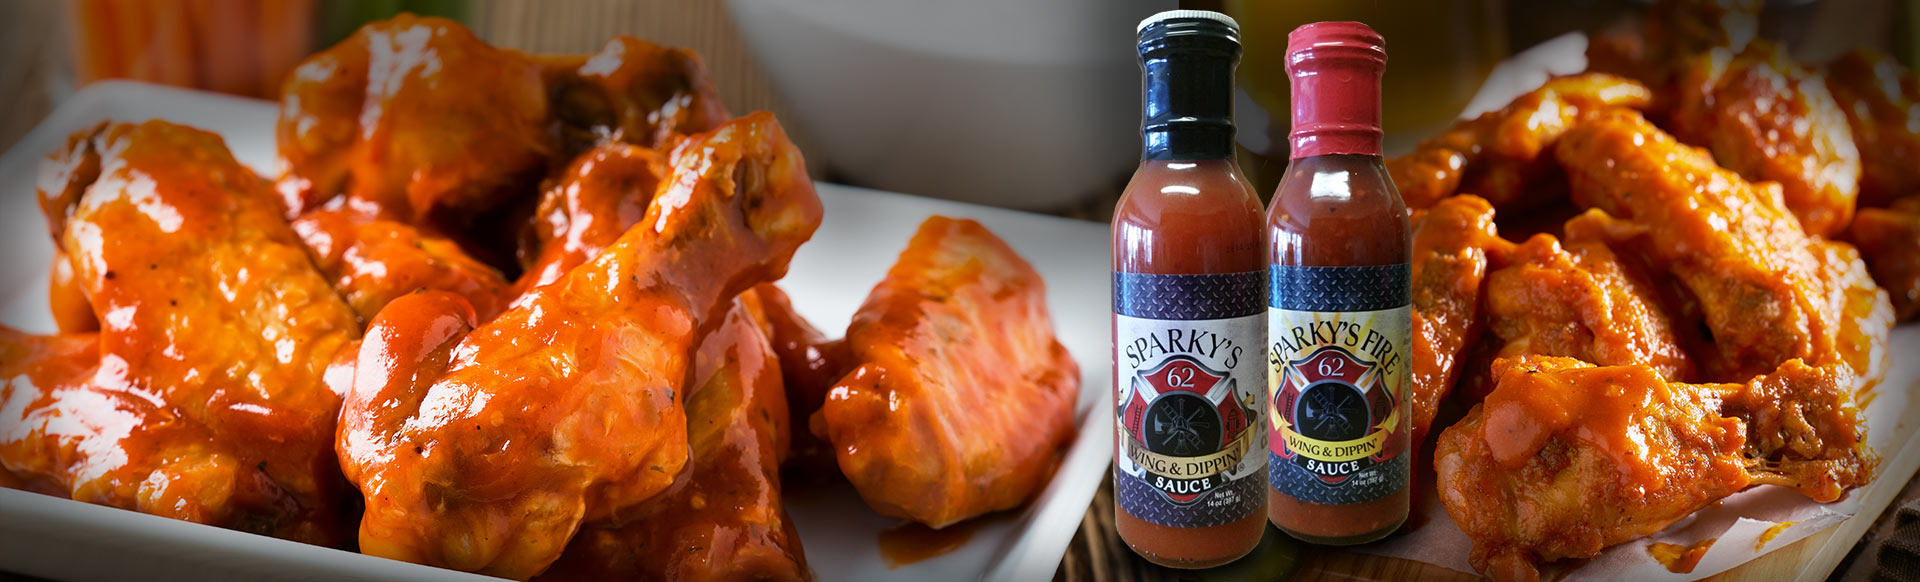 Sparky's Wing & Dipping Sauce